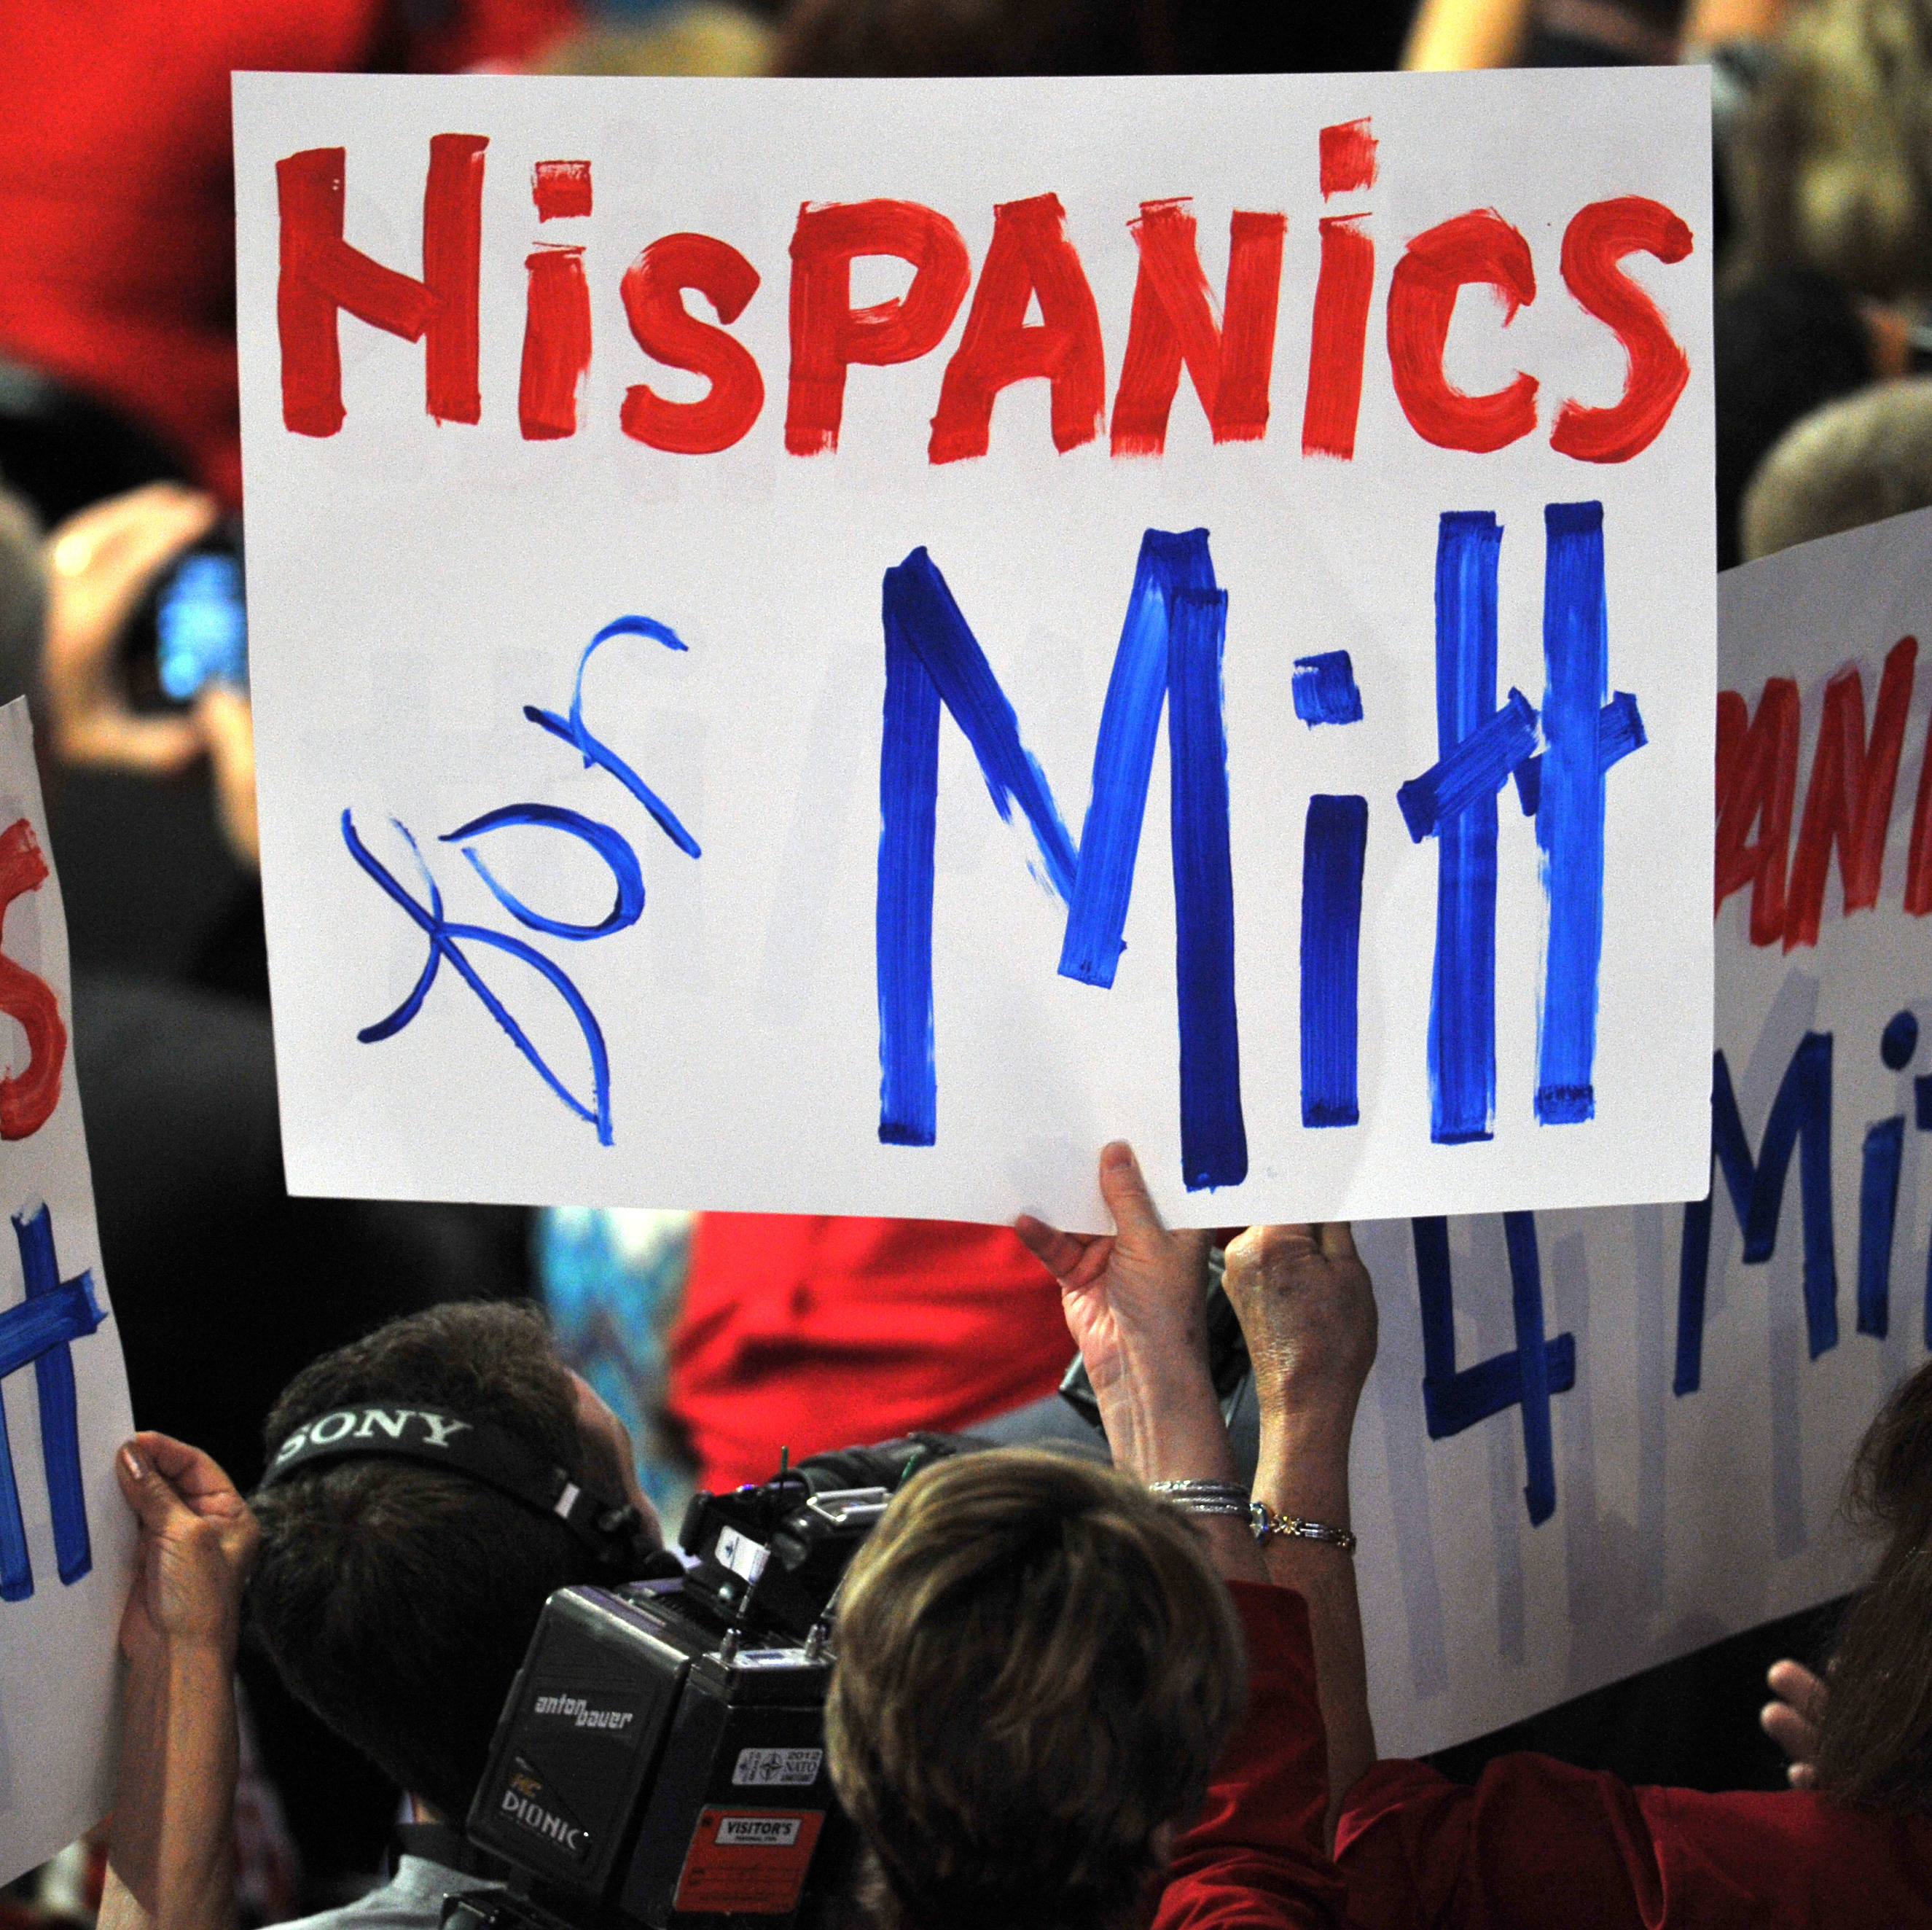 Signs at the Republican National Convention in Tampa, Fla., on Aug. 30.